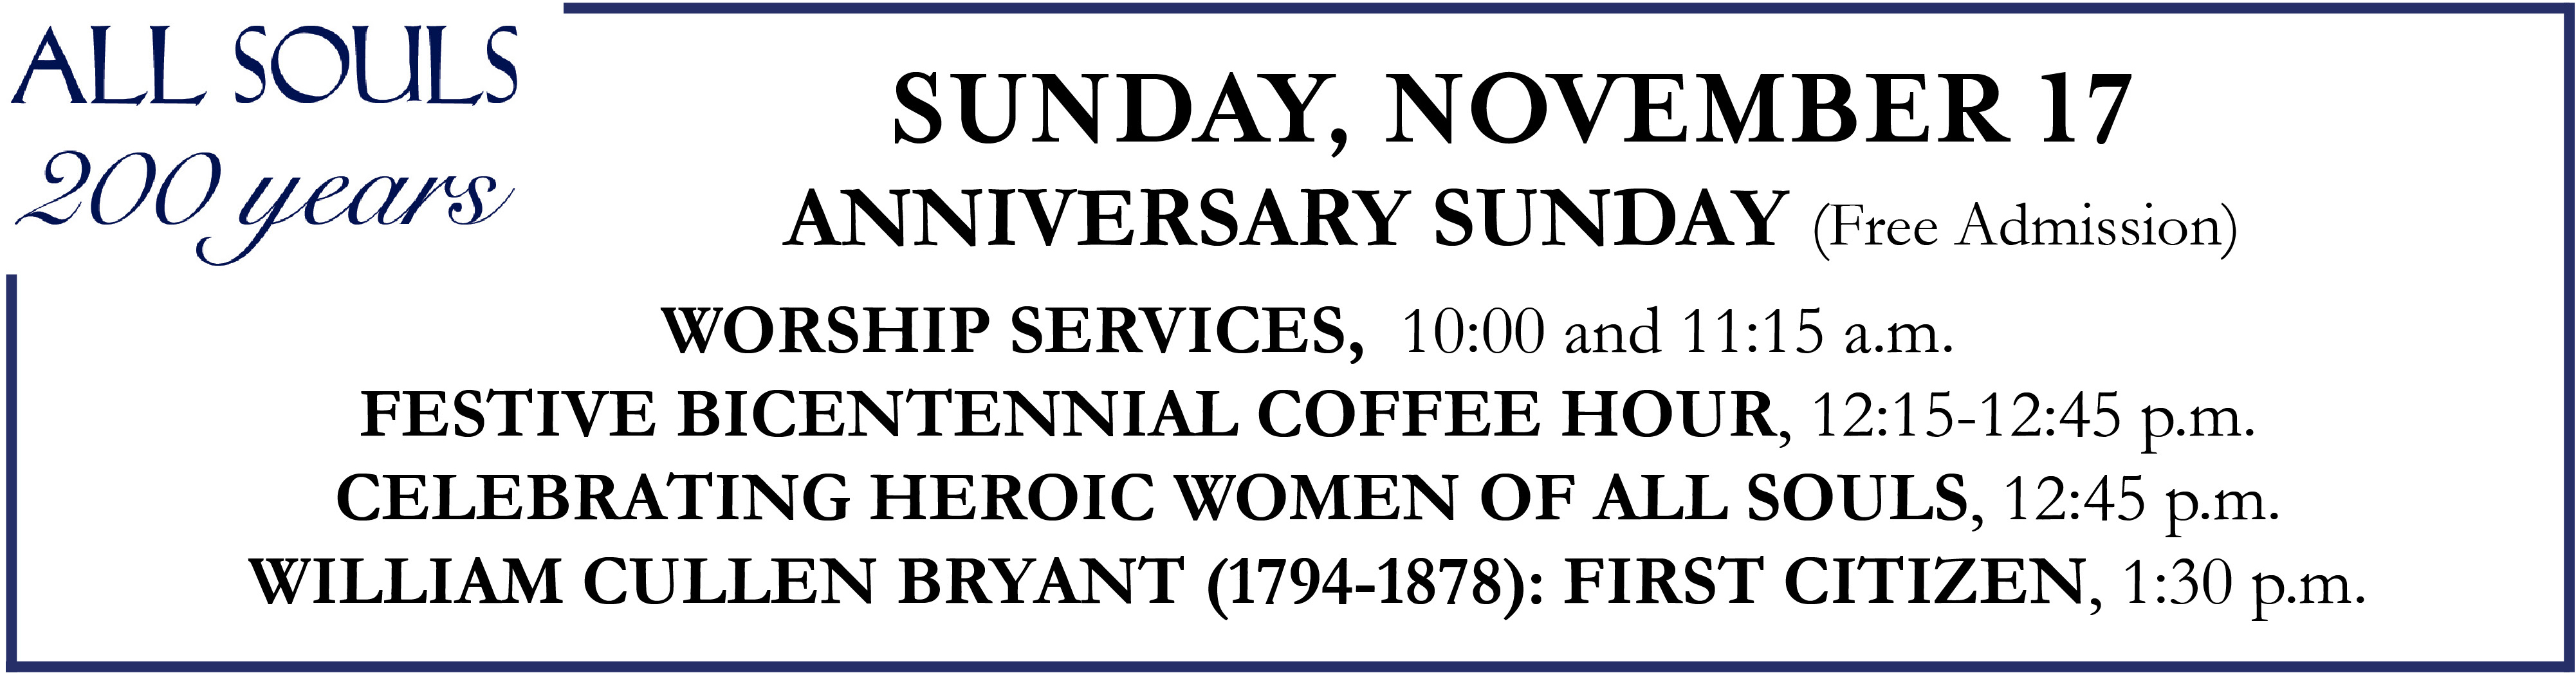 Sunday, November 17 Anniversary Sunday (Free Admission) Worship Services, 10:00 and 11:15 a.m. Festive Bicentennial Coffee Hour, 12:15-12:45 p.m. CELEBRATING HEROIC WOMEN OF ALL SOULS, 12:45 p.m. WILLIAM CULLEN BRYANT (1794-1878): FIRST CITIZEN, 1:30 p.m.